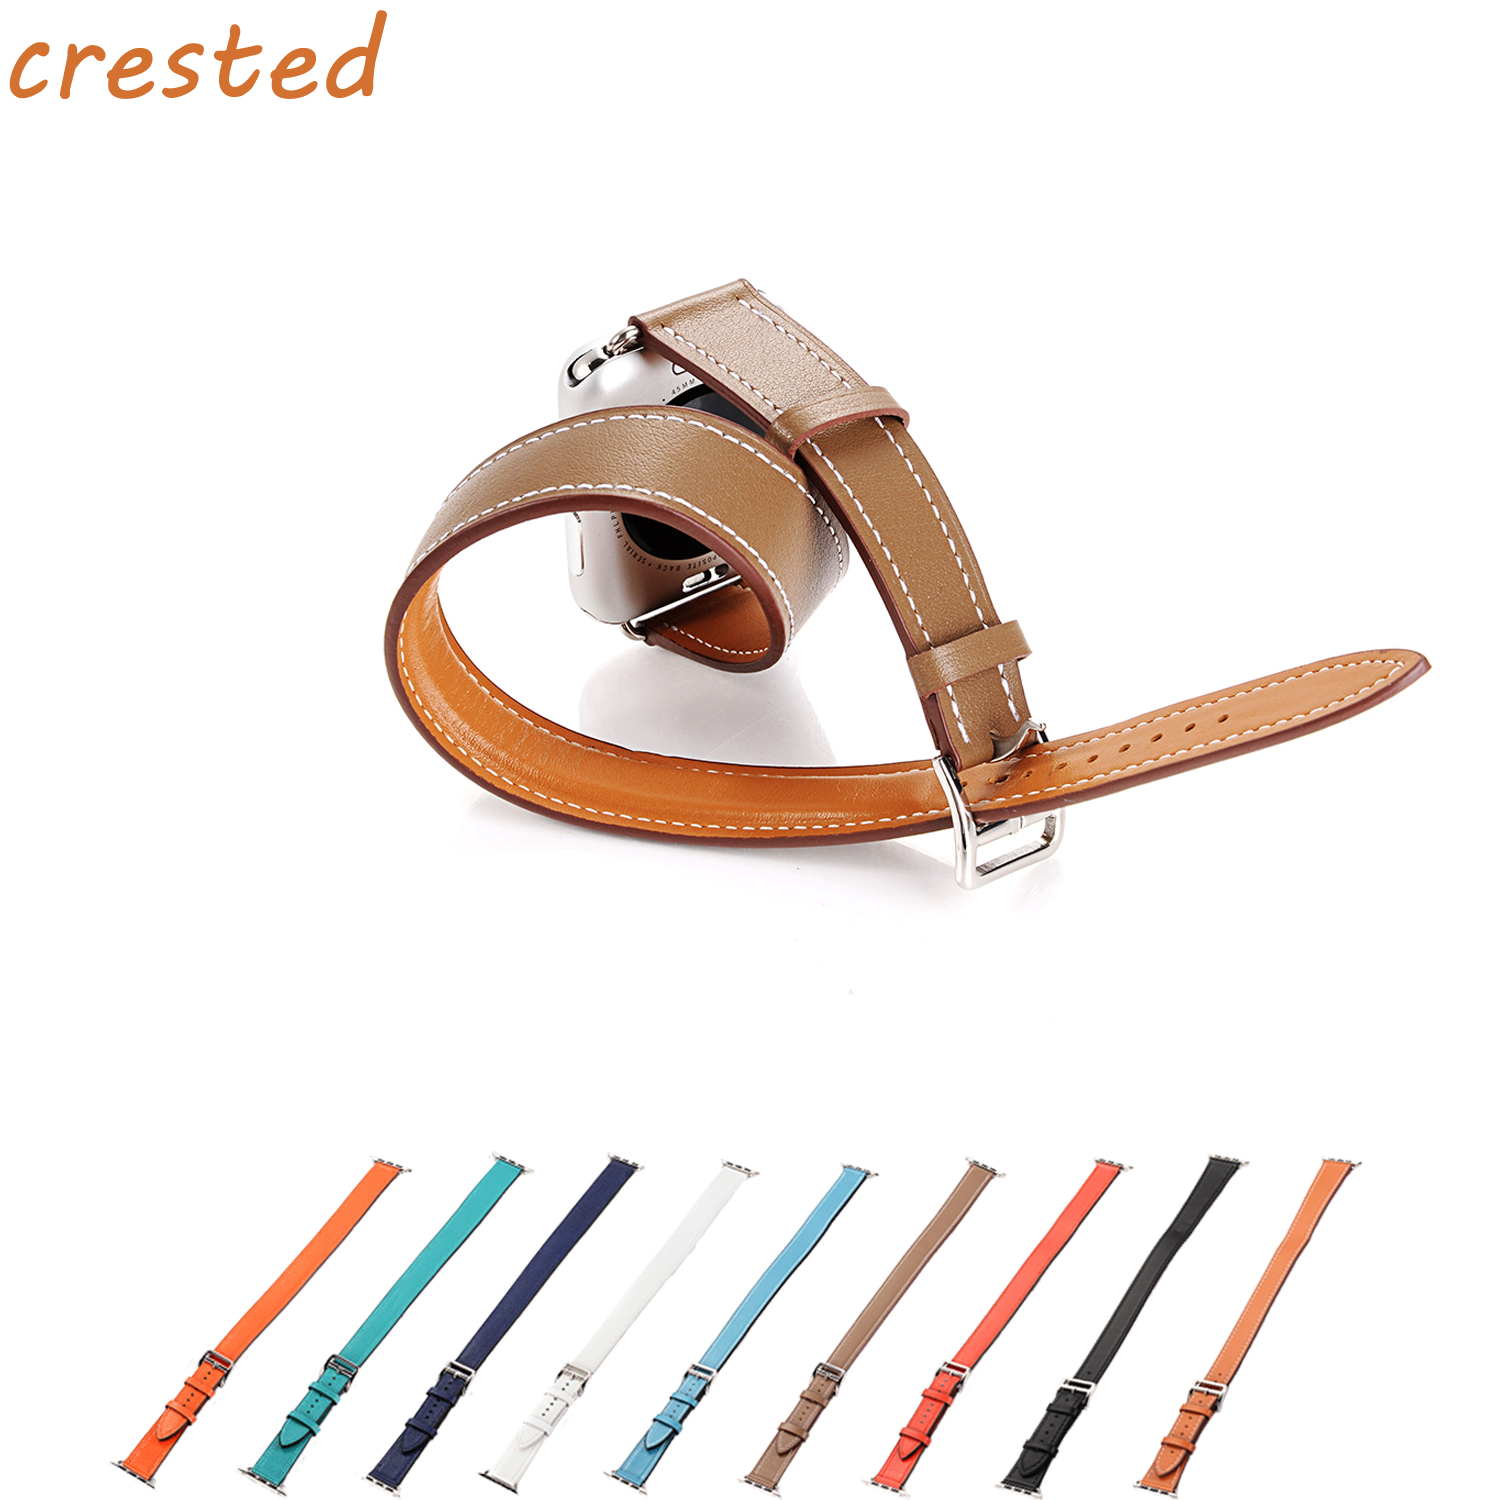 Luxury Double tour bracelet strap for apple watch band 42mm/38mm iWatch 3/2/1 Genuine leather watchband wrist belt+metal buckle crested genuine leather strap for samsung gear s3 watch band wrist bracelet leather watchband metal buck belt